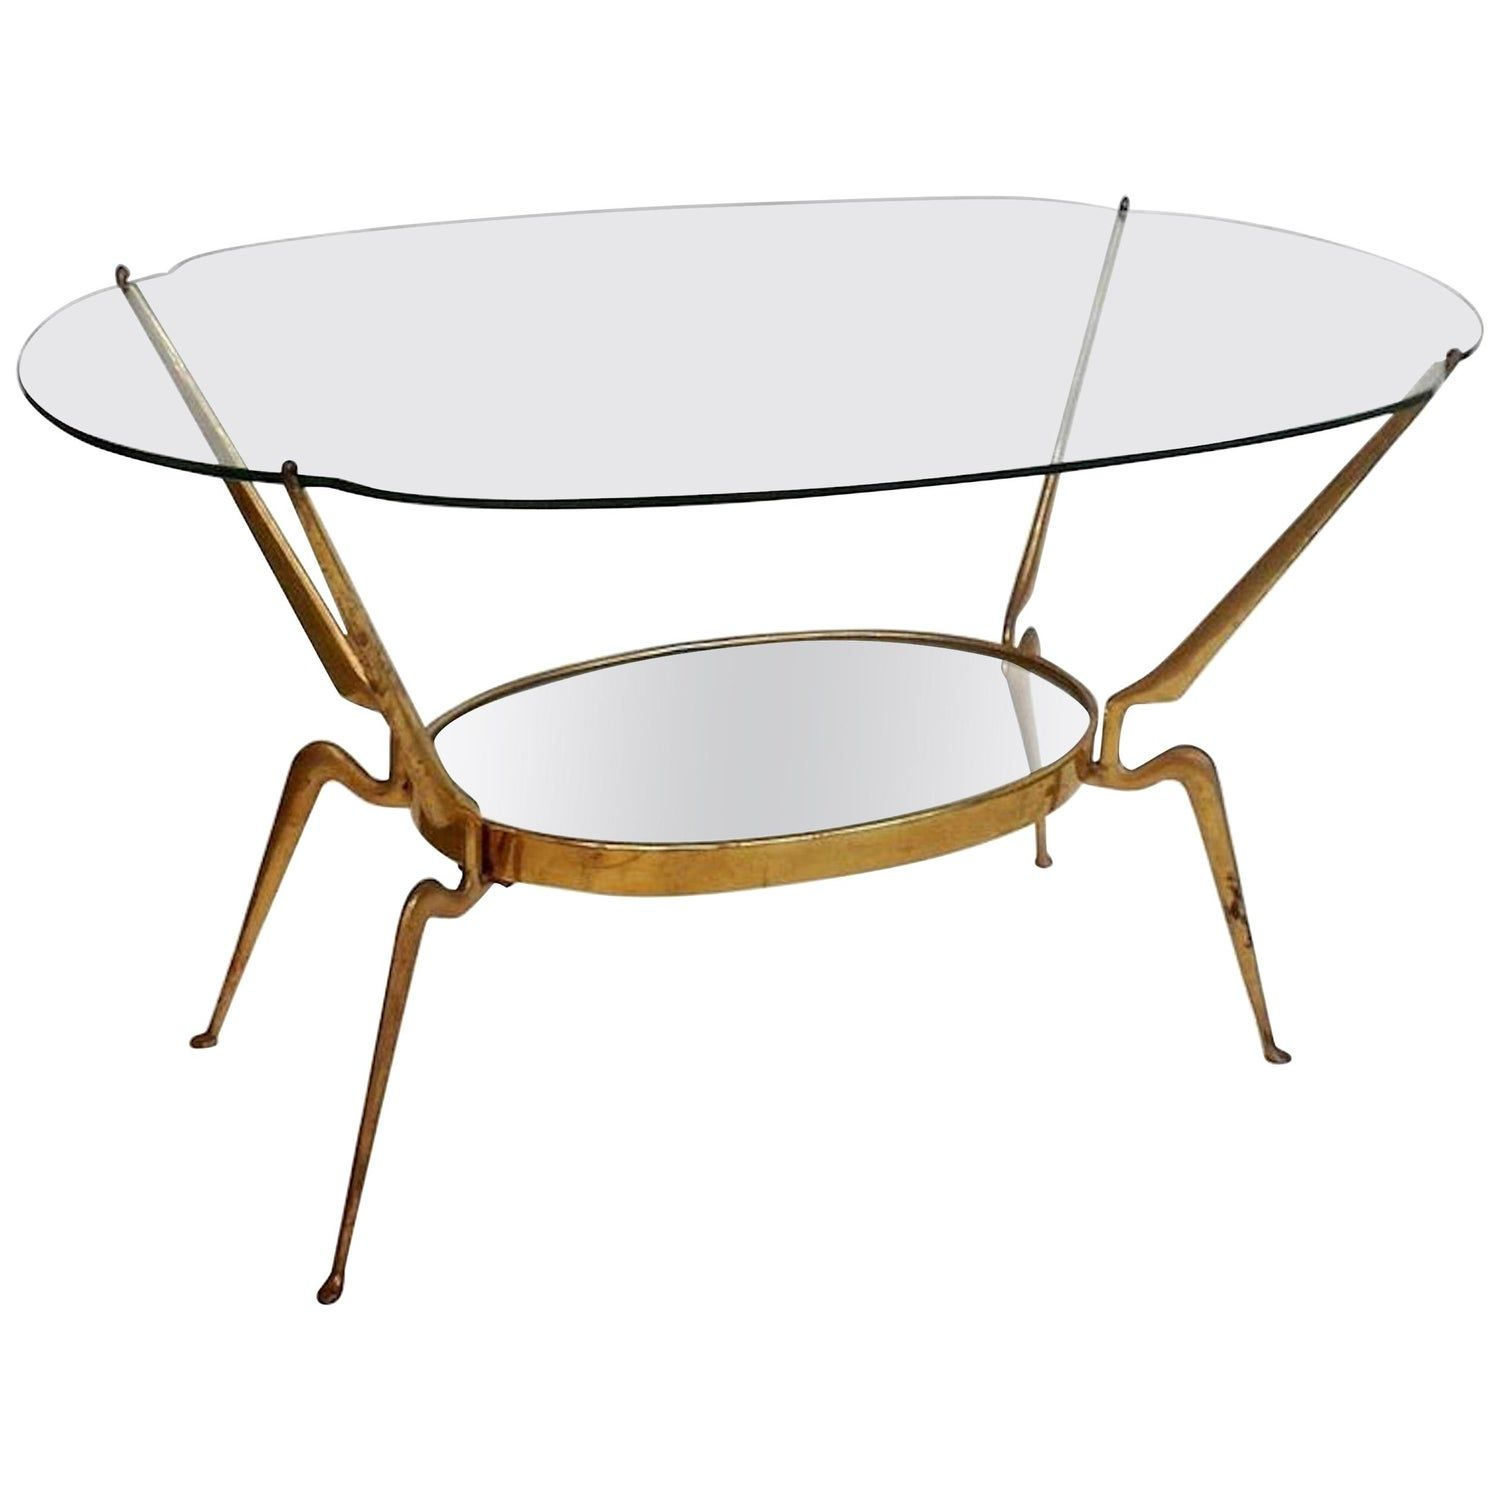 Brass Glass Coffee Table By Cesare Lacca Italy Mid Century Modern 1950s Glass Coffee Table Coffee Table Oval Glass Coffee Table [ 1500 x 1500 Pixel ]